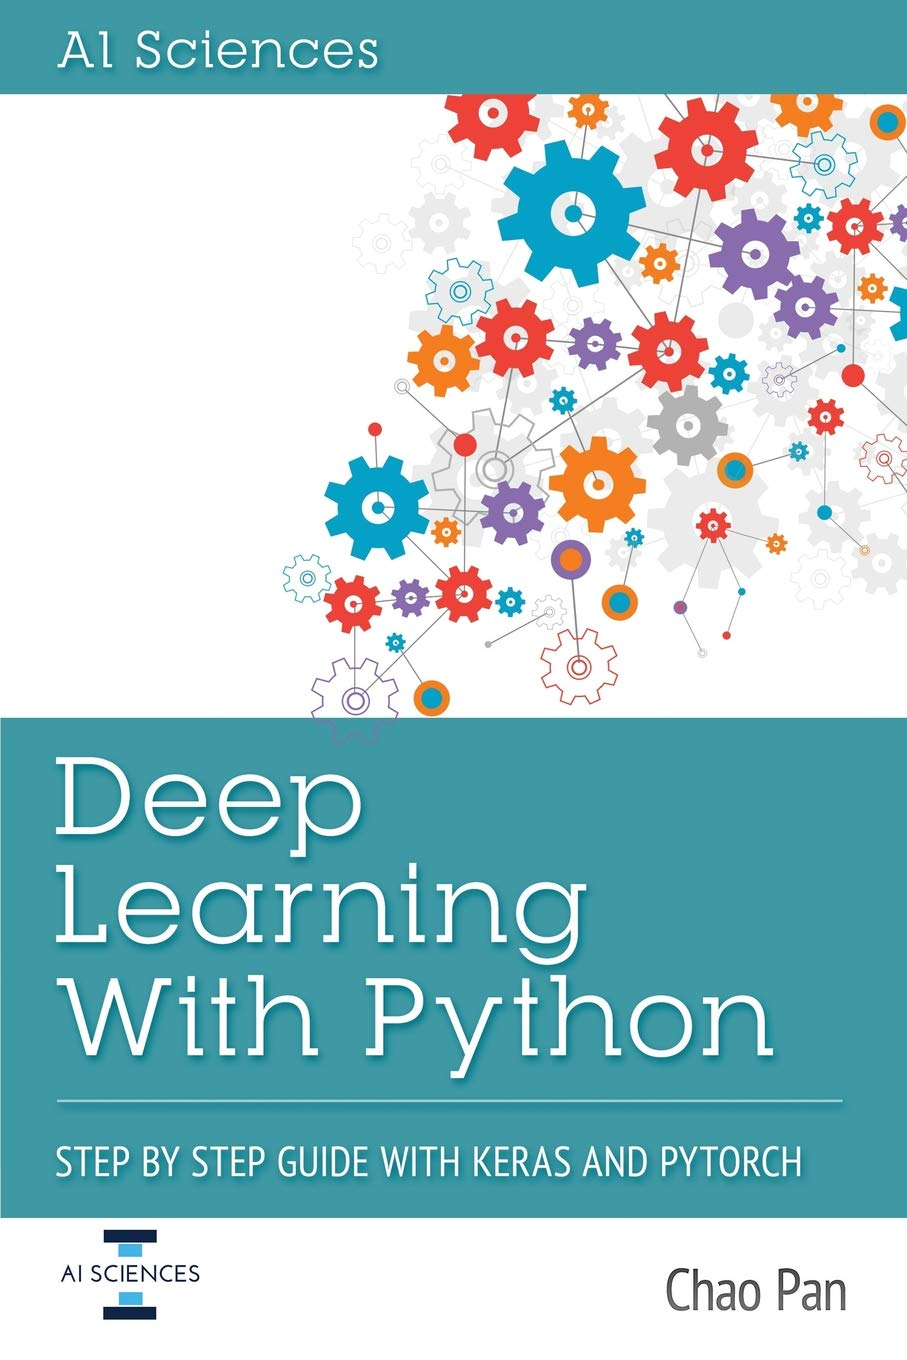 Best Laptop For Pytorch